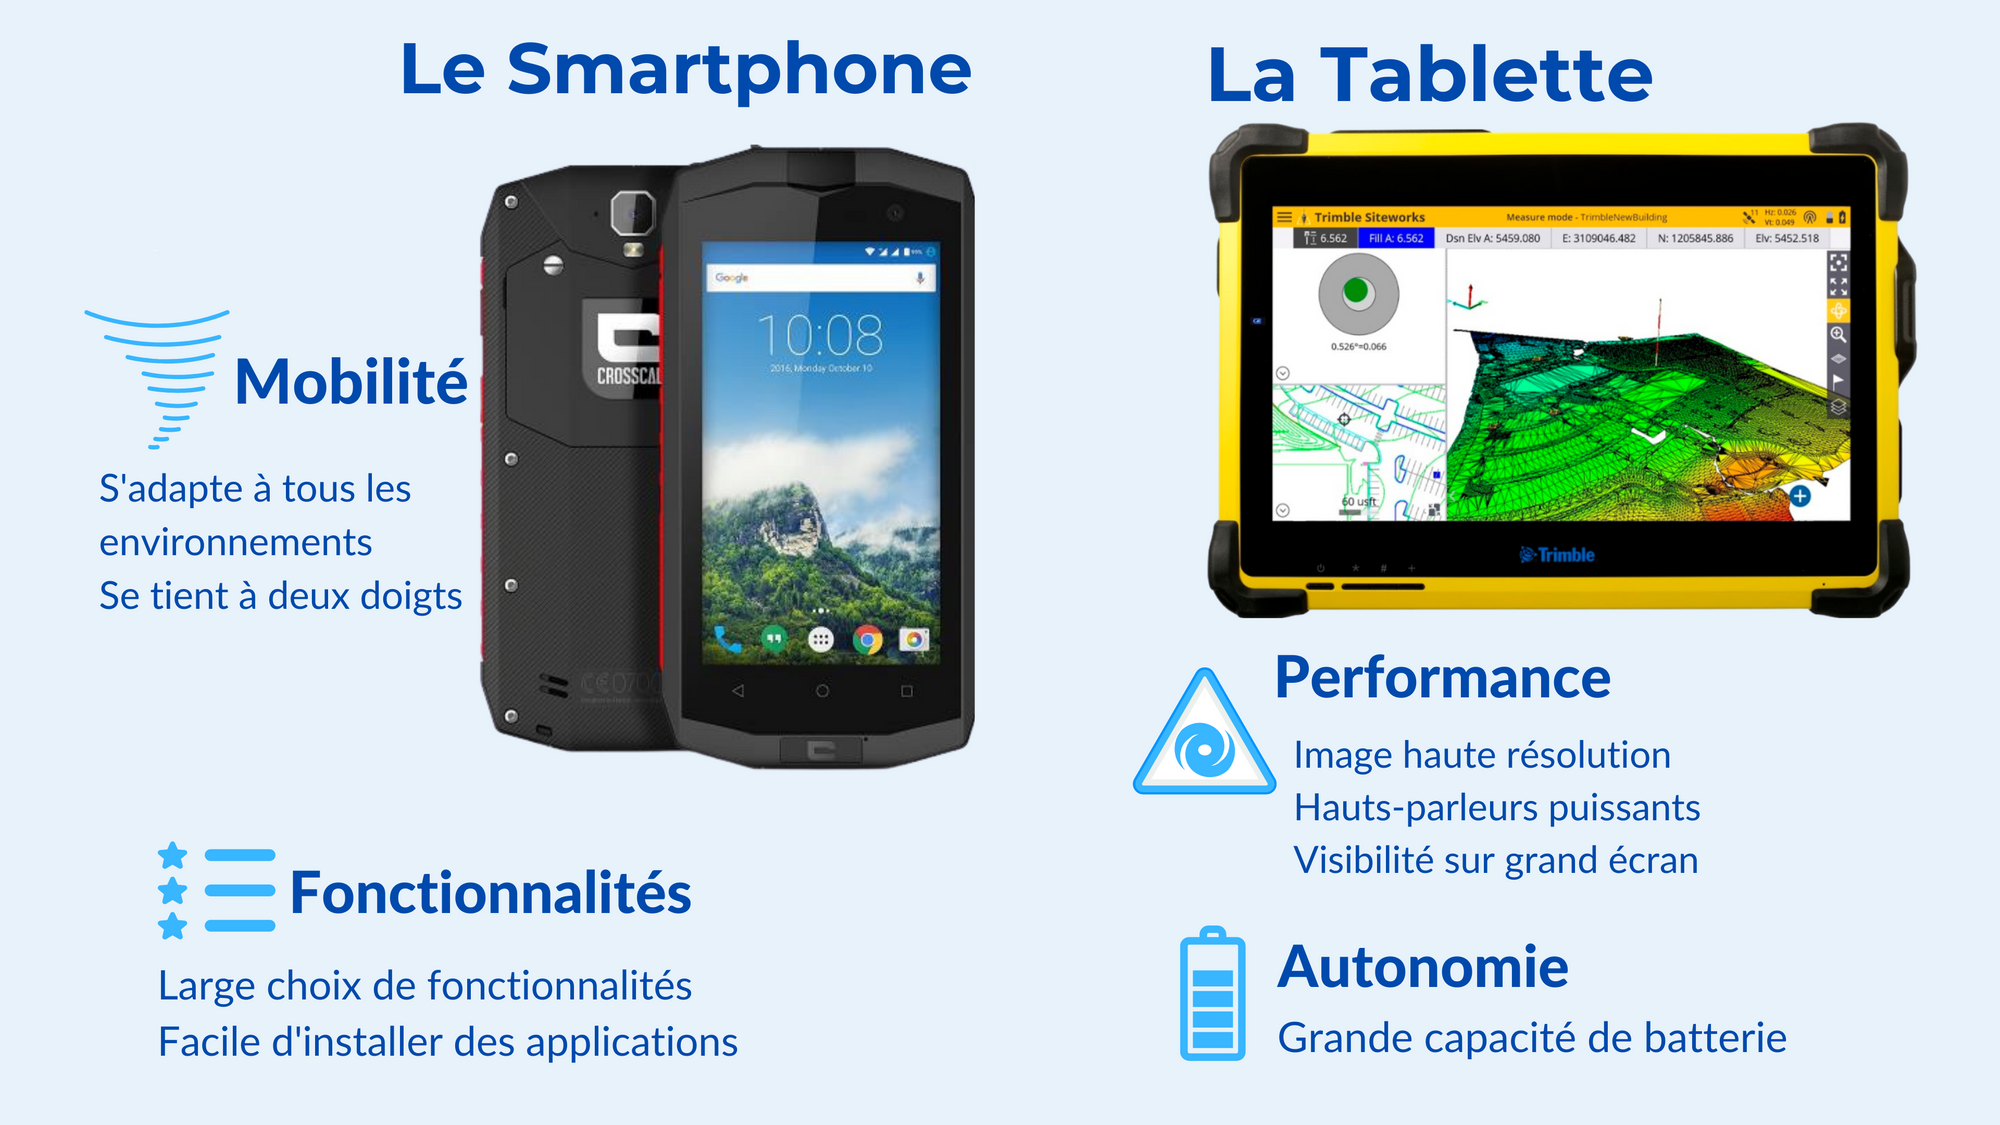 Télématique : guide comparatif Smartphone vs Tablette